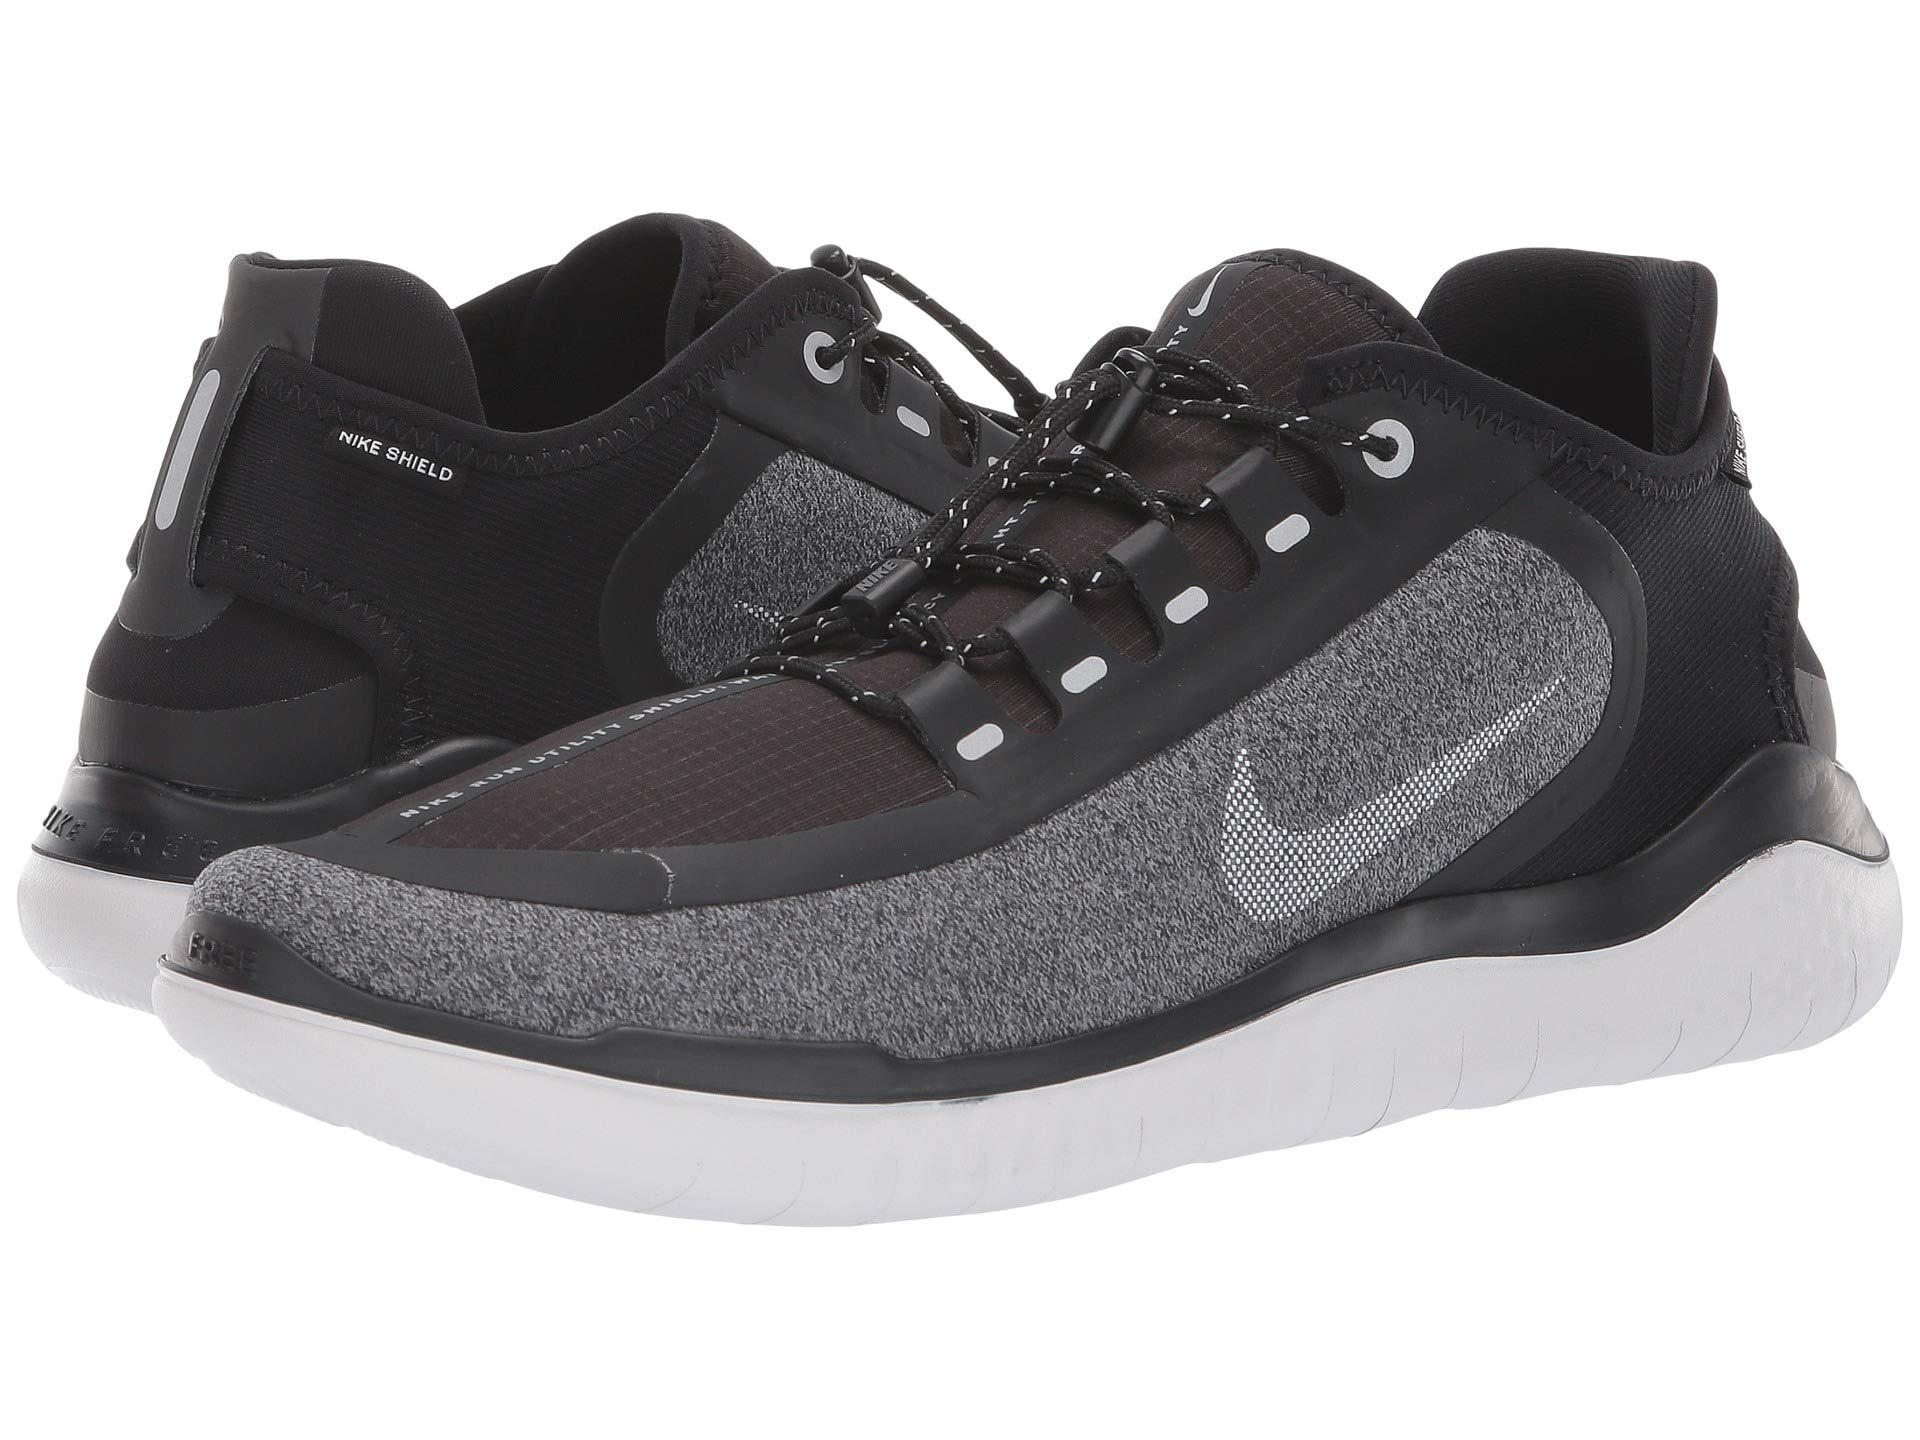 6649174241c72 Lyst - Nike Free Rn 2018 Shield Training Shoes in Black for Men